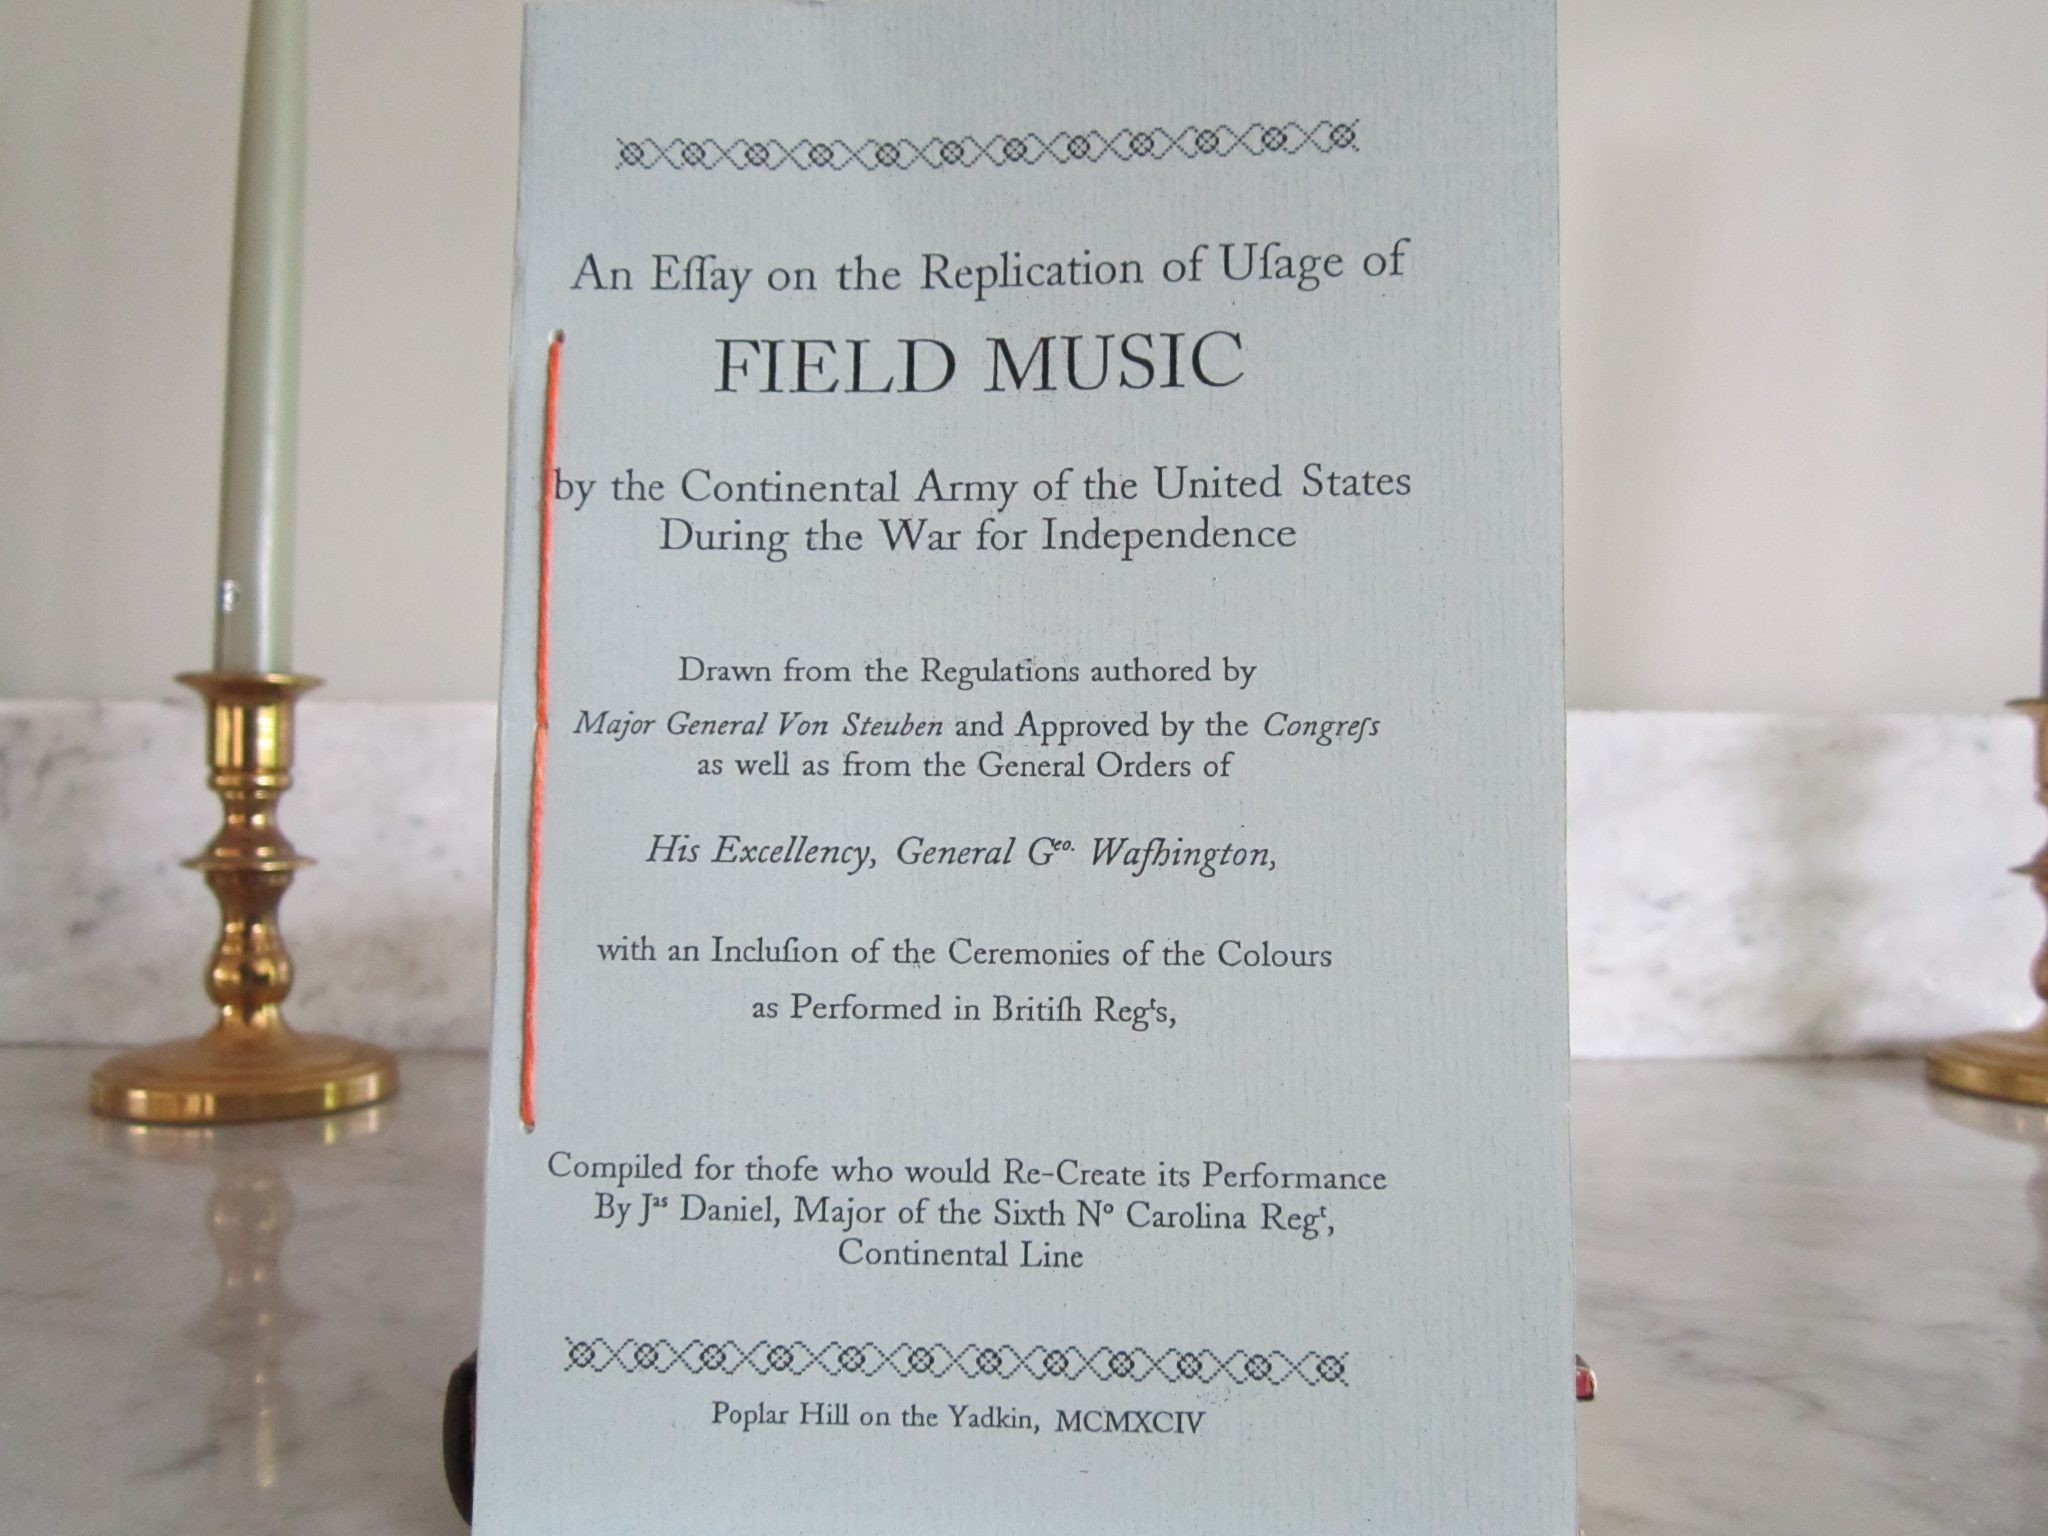 An Essay on the Replication of the Usage of Field Music by the Continental Army of the United States During the War for Independence 1